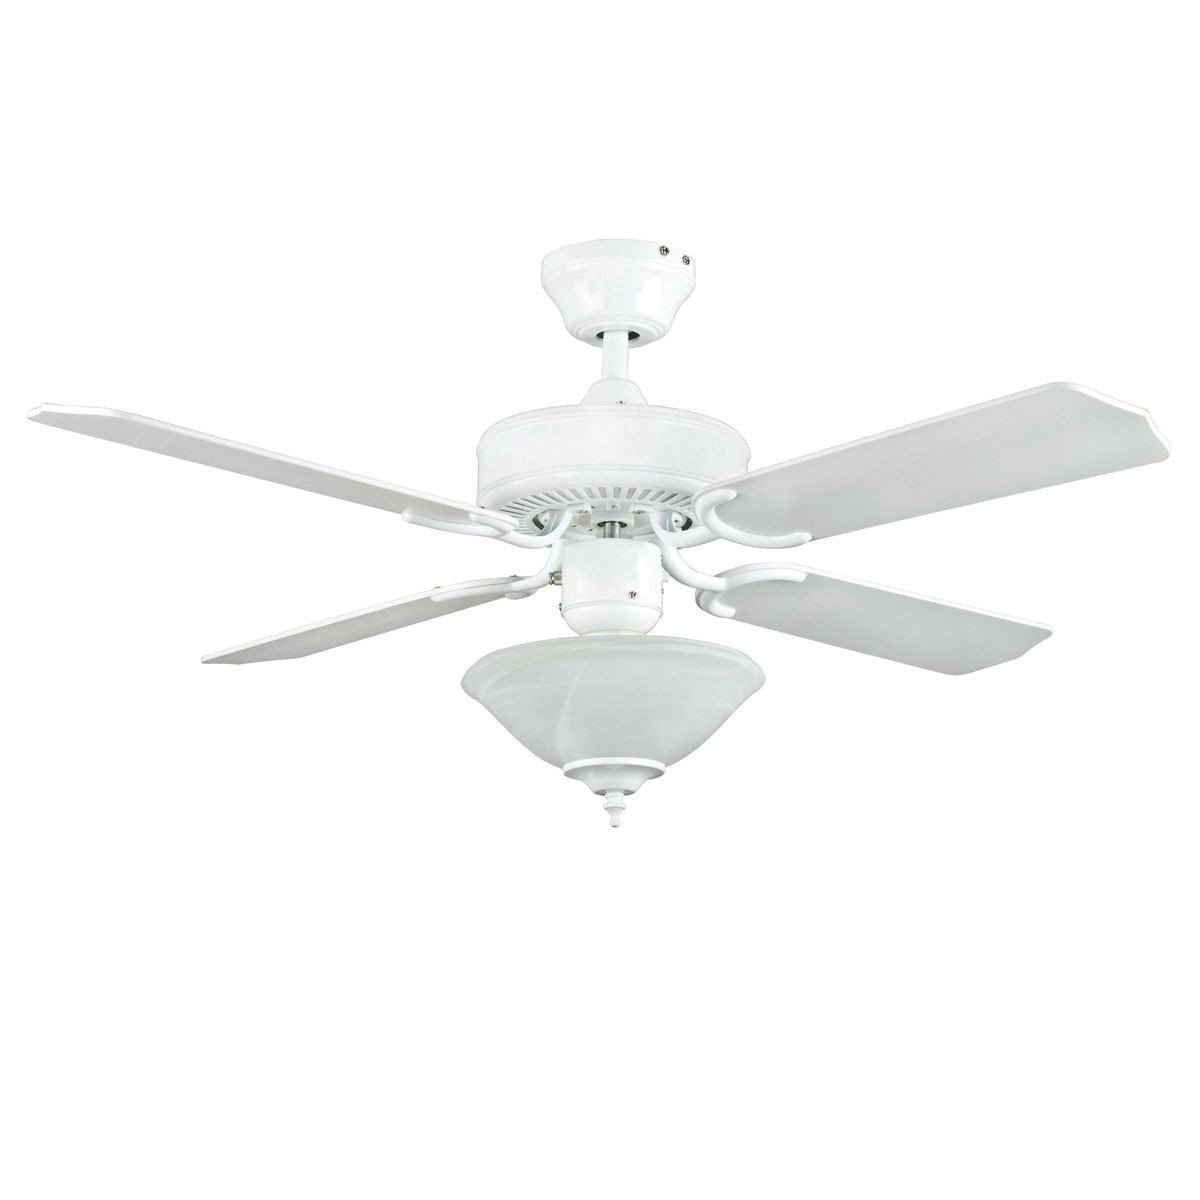 "Concord Fans 42"" White Modern Small Ceiling Fan with Bowl Fan Light Kit"